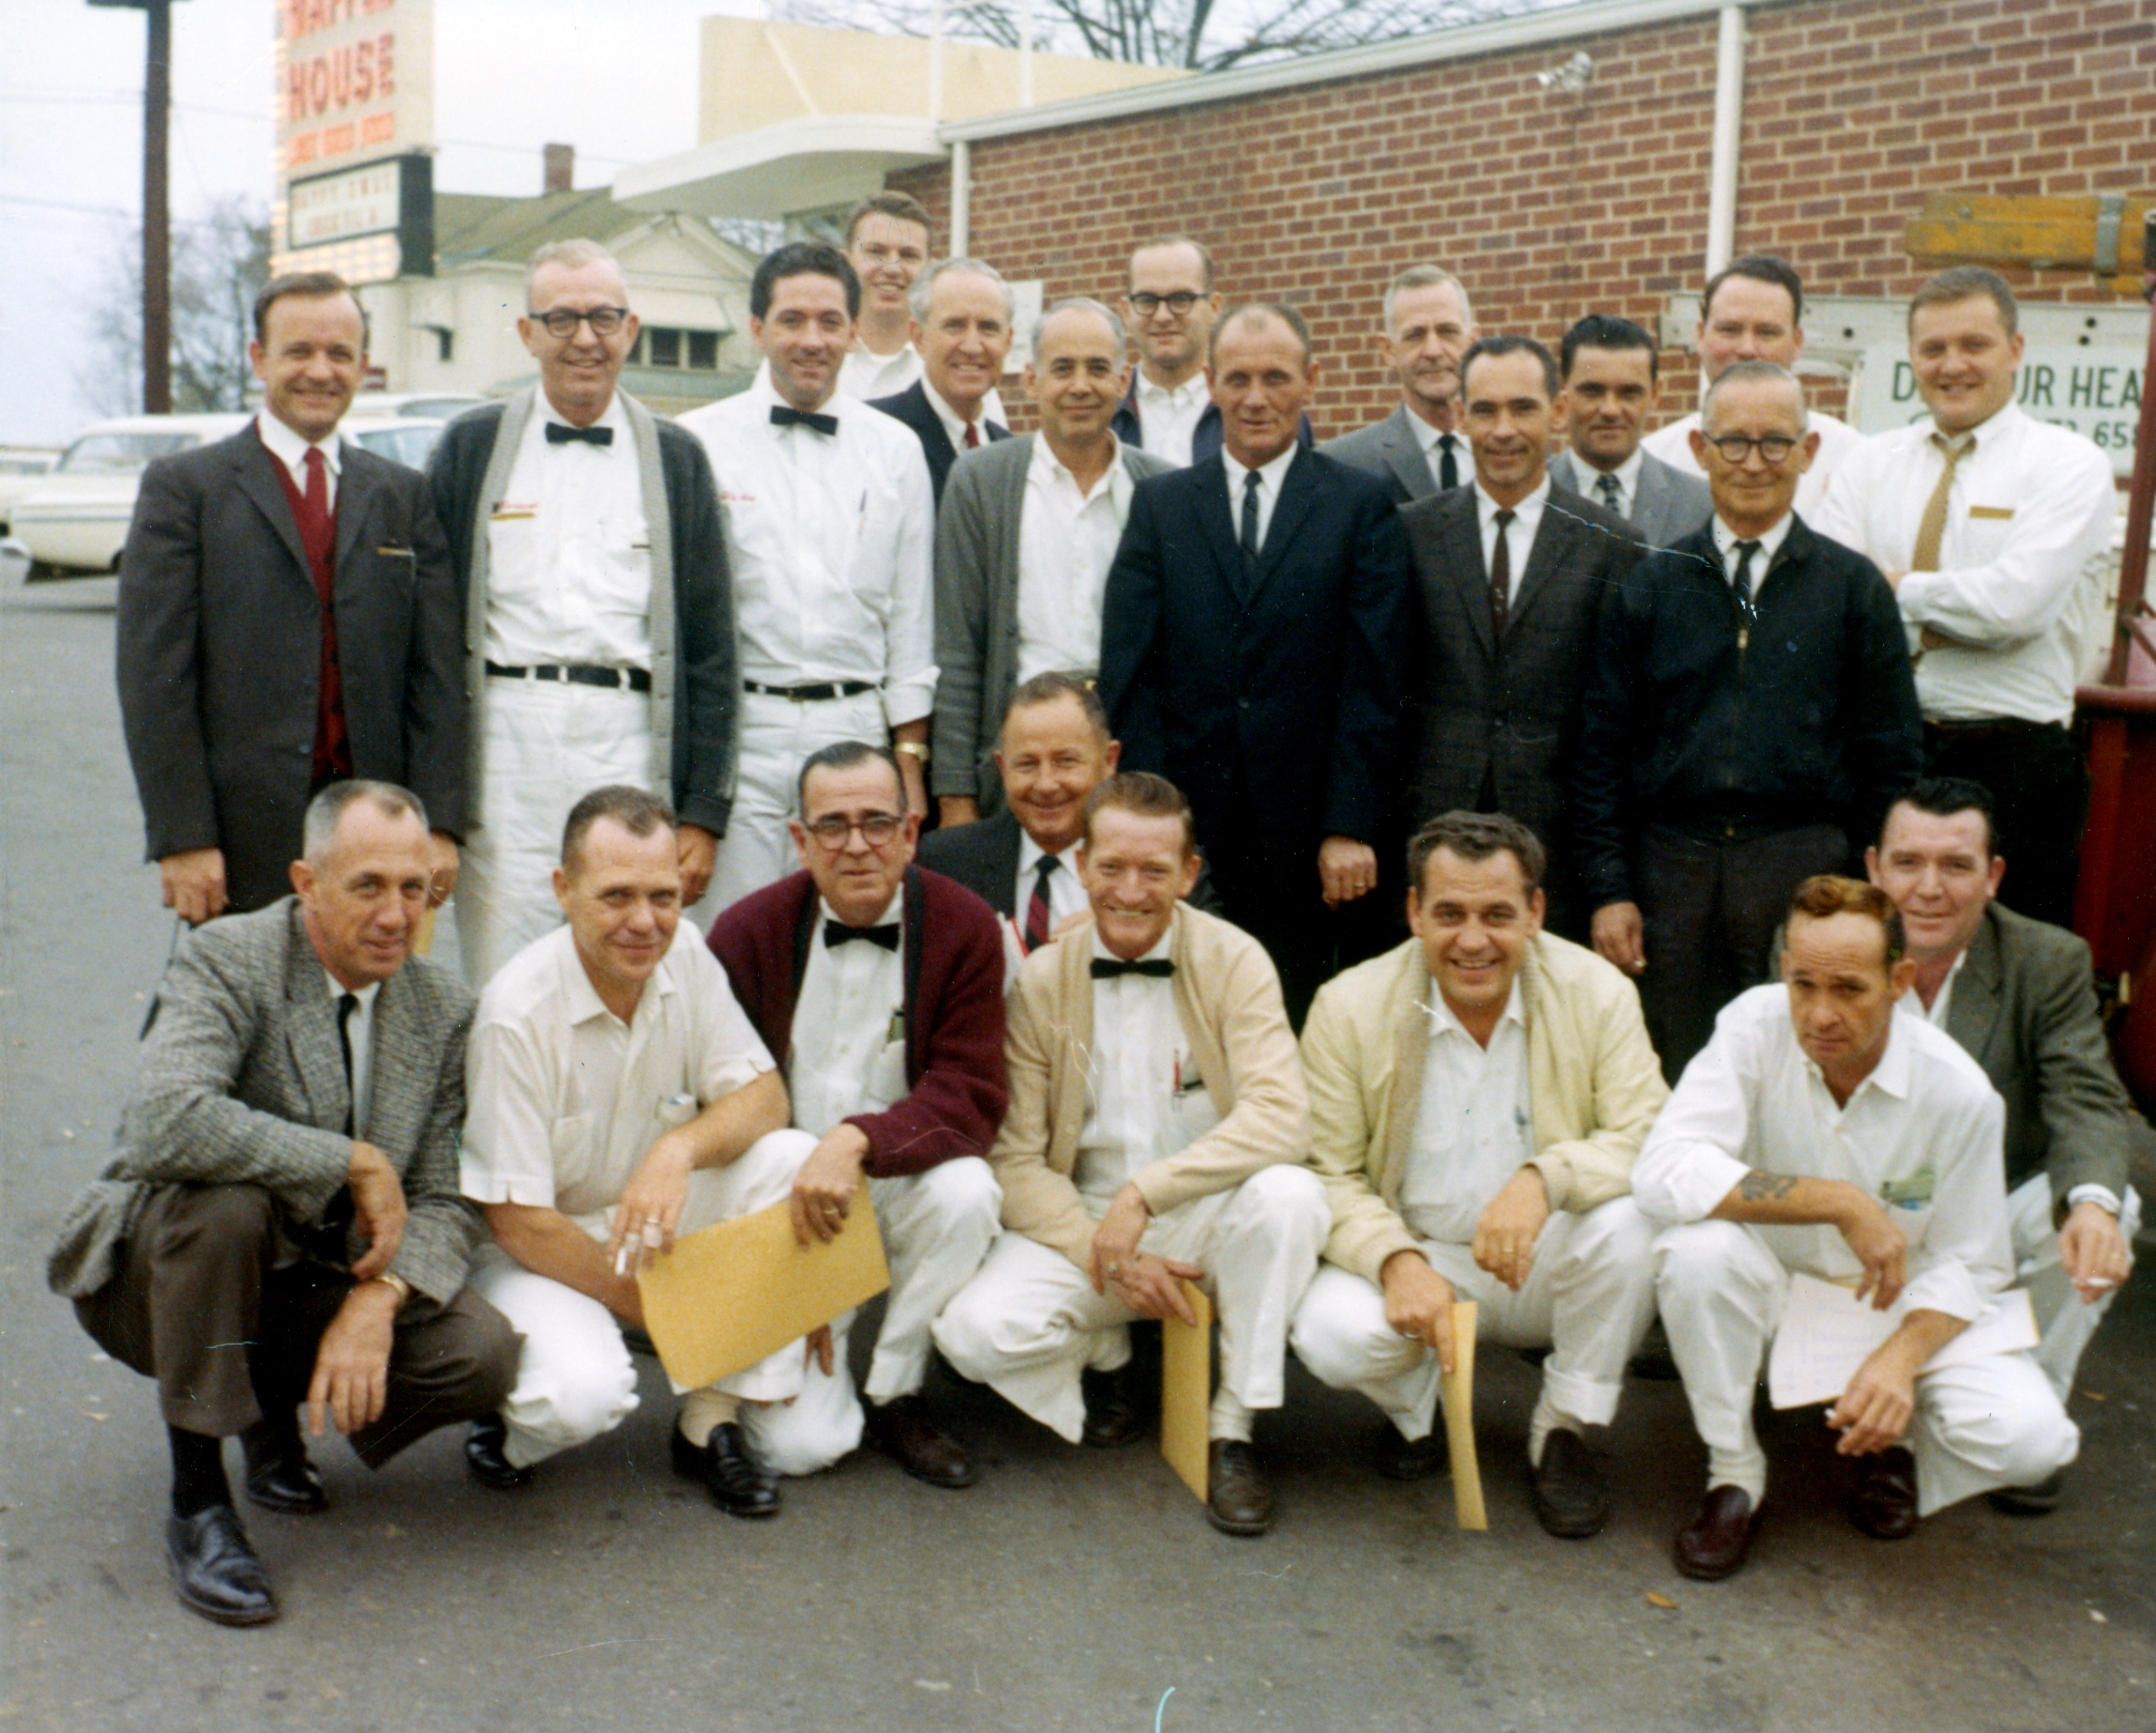 vintage photo of early Waffle House employee line-up